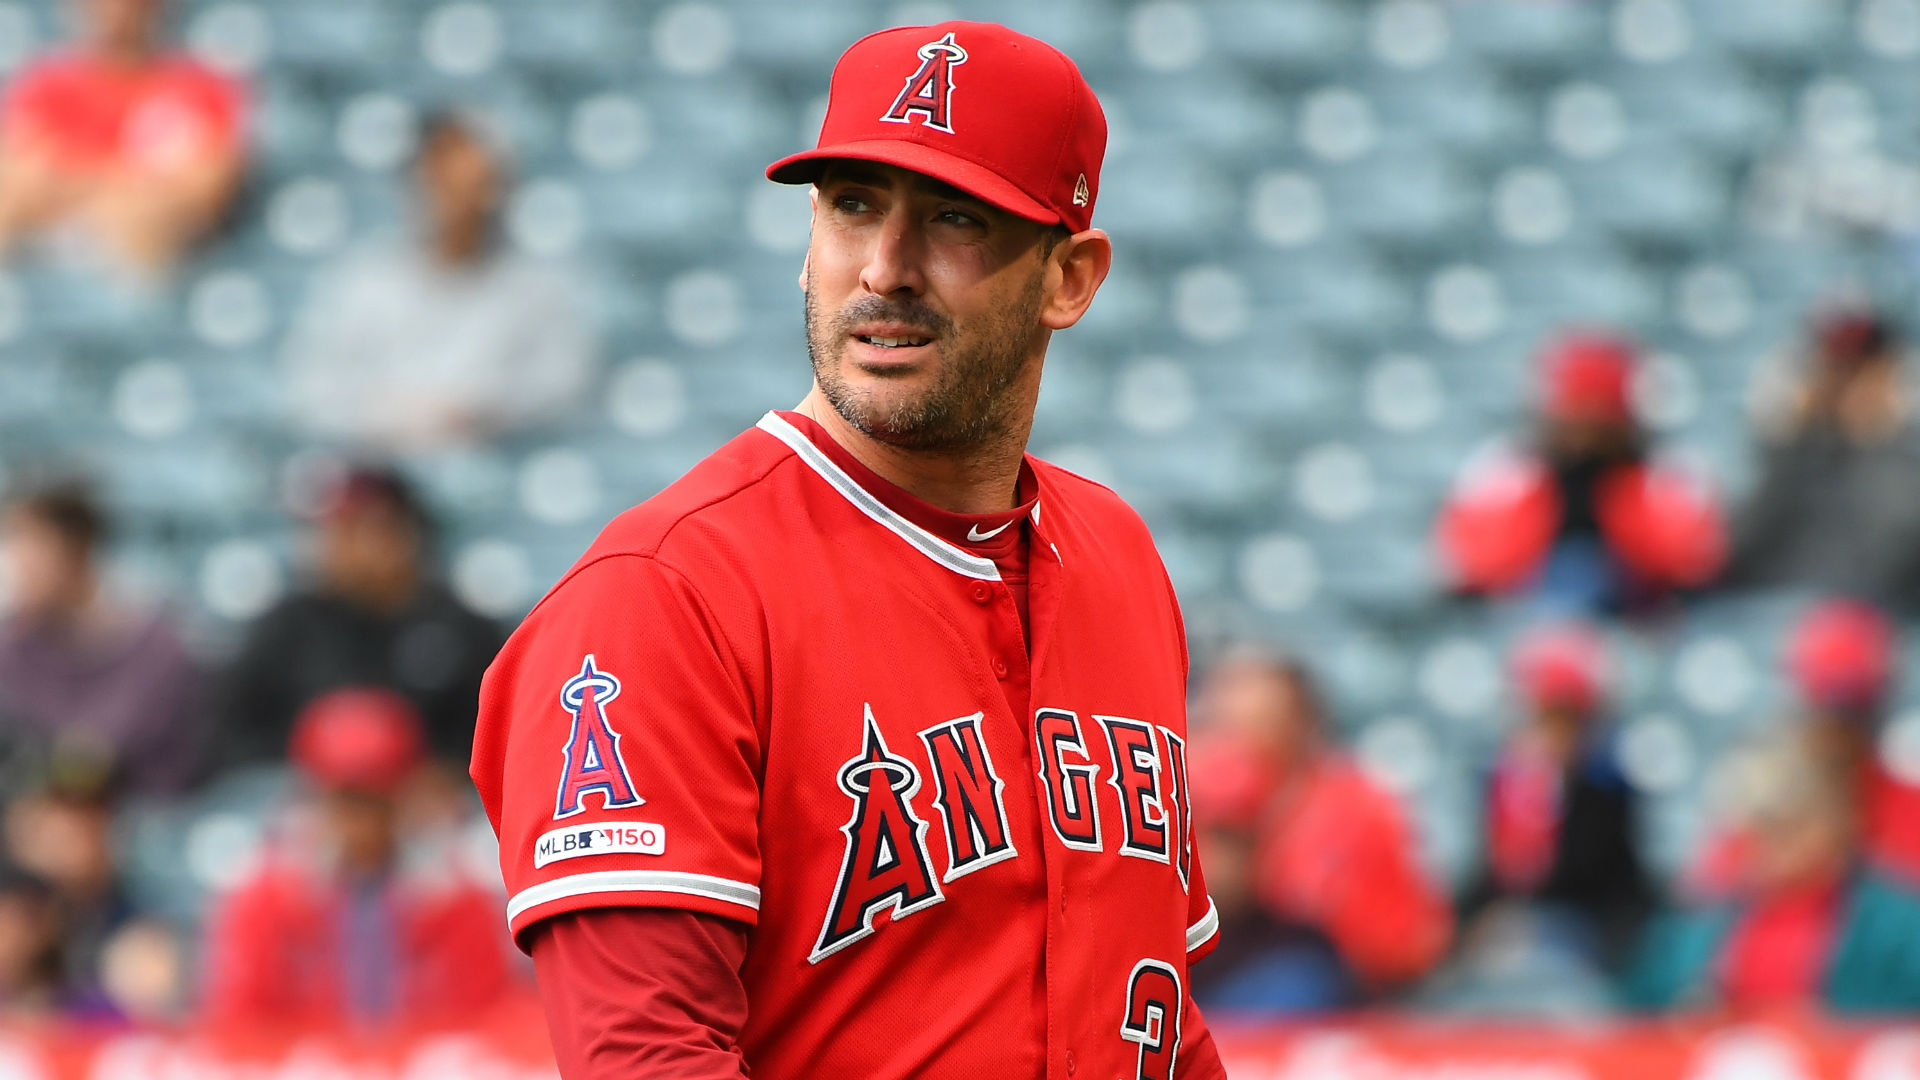 Harvey was released by the Angels after going 3-5 with a 7.09 ERA.